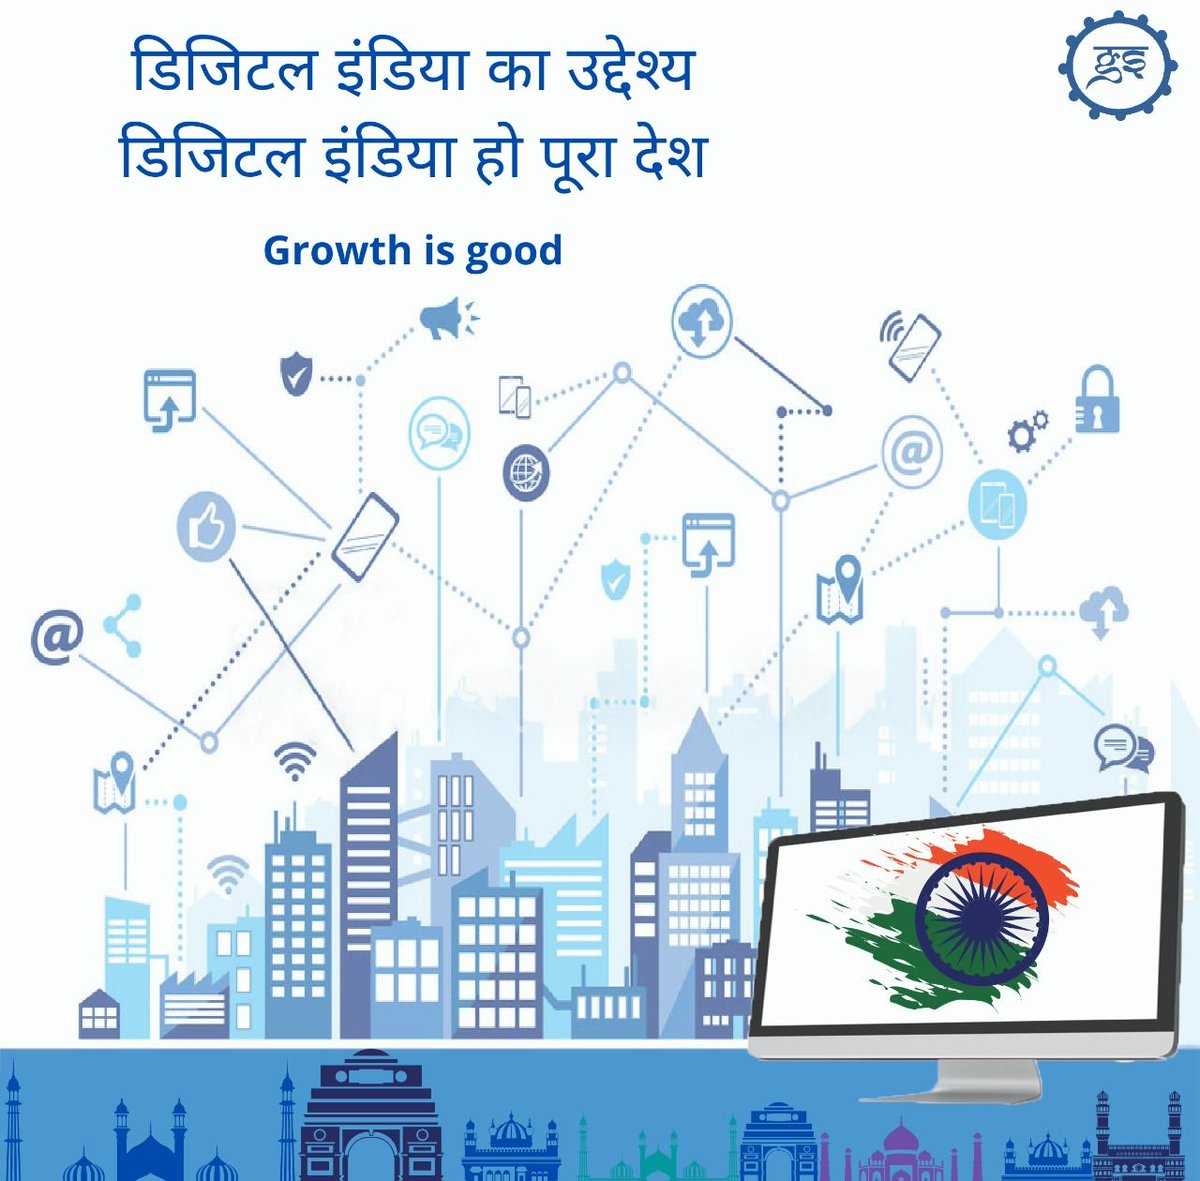 The initiative of Digital India aims at connecting and providing the much needed thrust for India's growth. #leadership #success #motivation #leadershipdevelopment #inspiration #help #goals #MakeInIndia #digitalindia #supportbusiness #smallbusinessconsulting #localforvocal